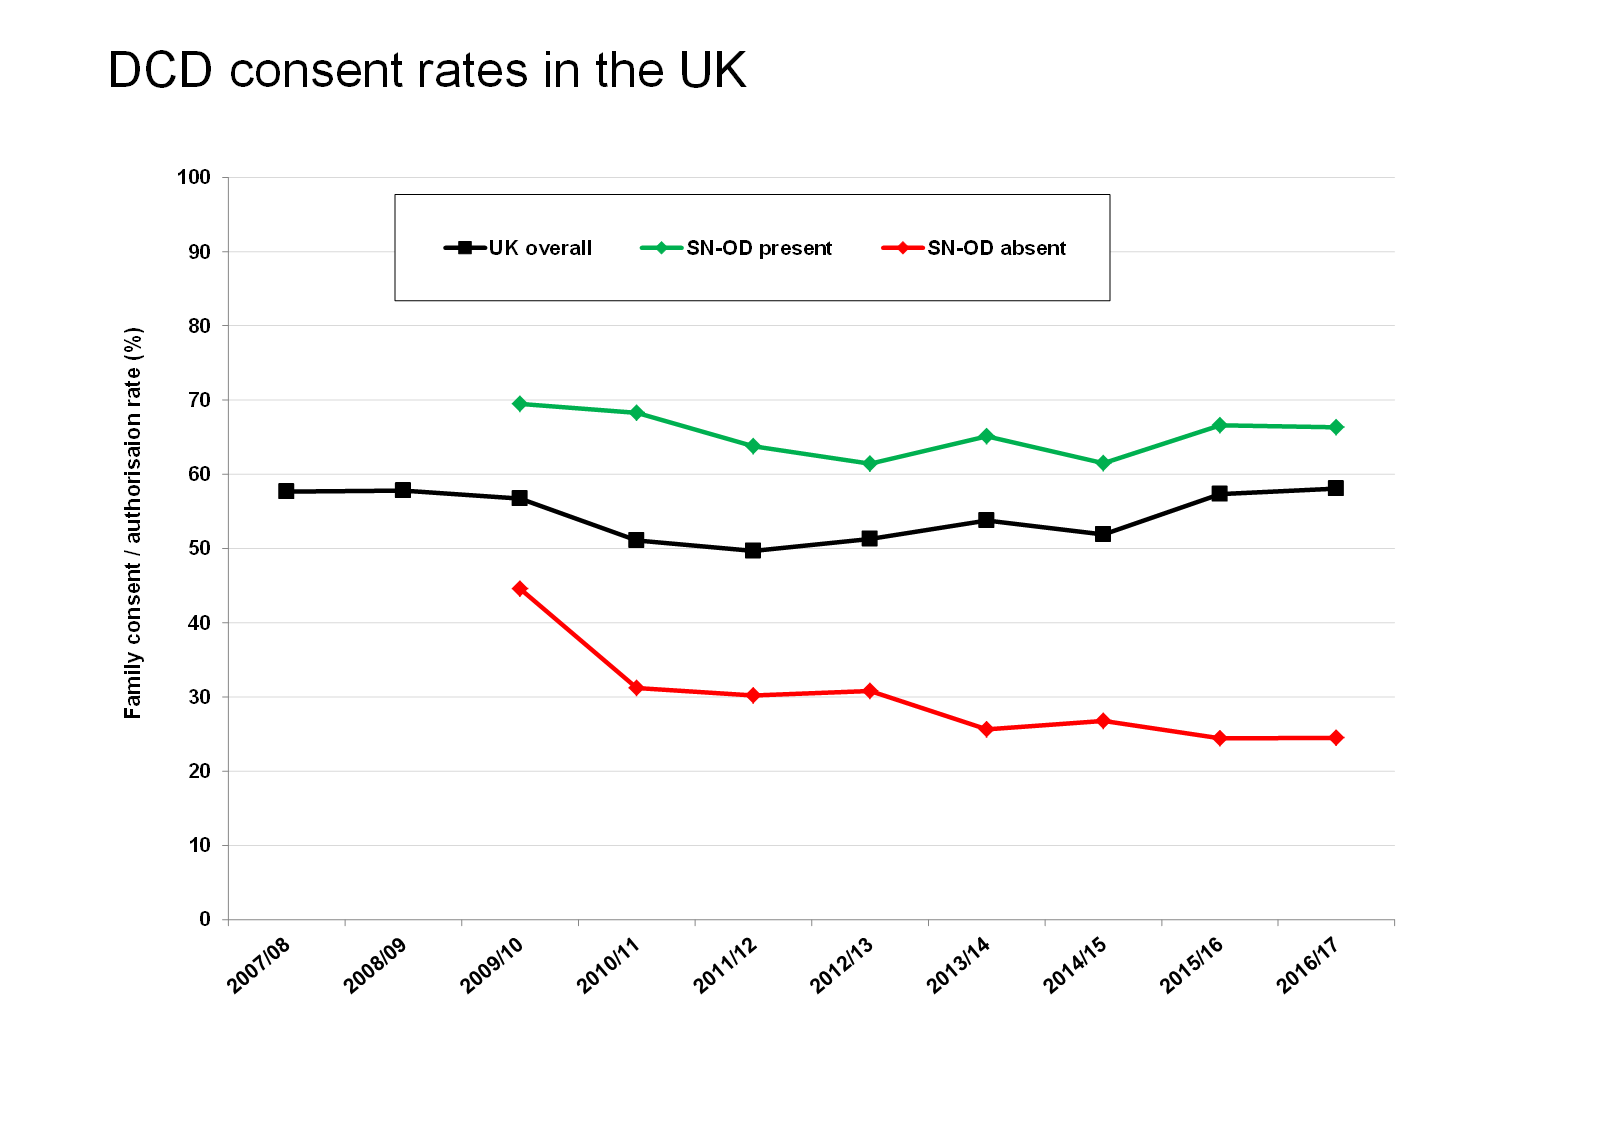 DCD consent rates in the UK